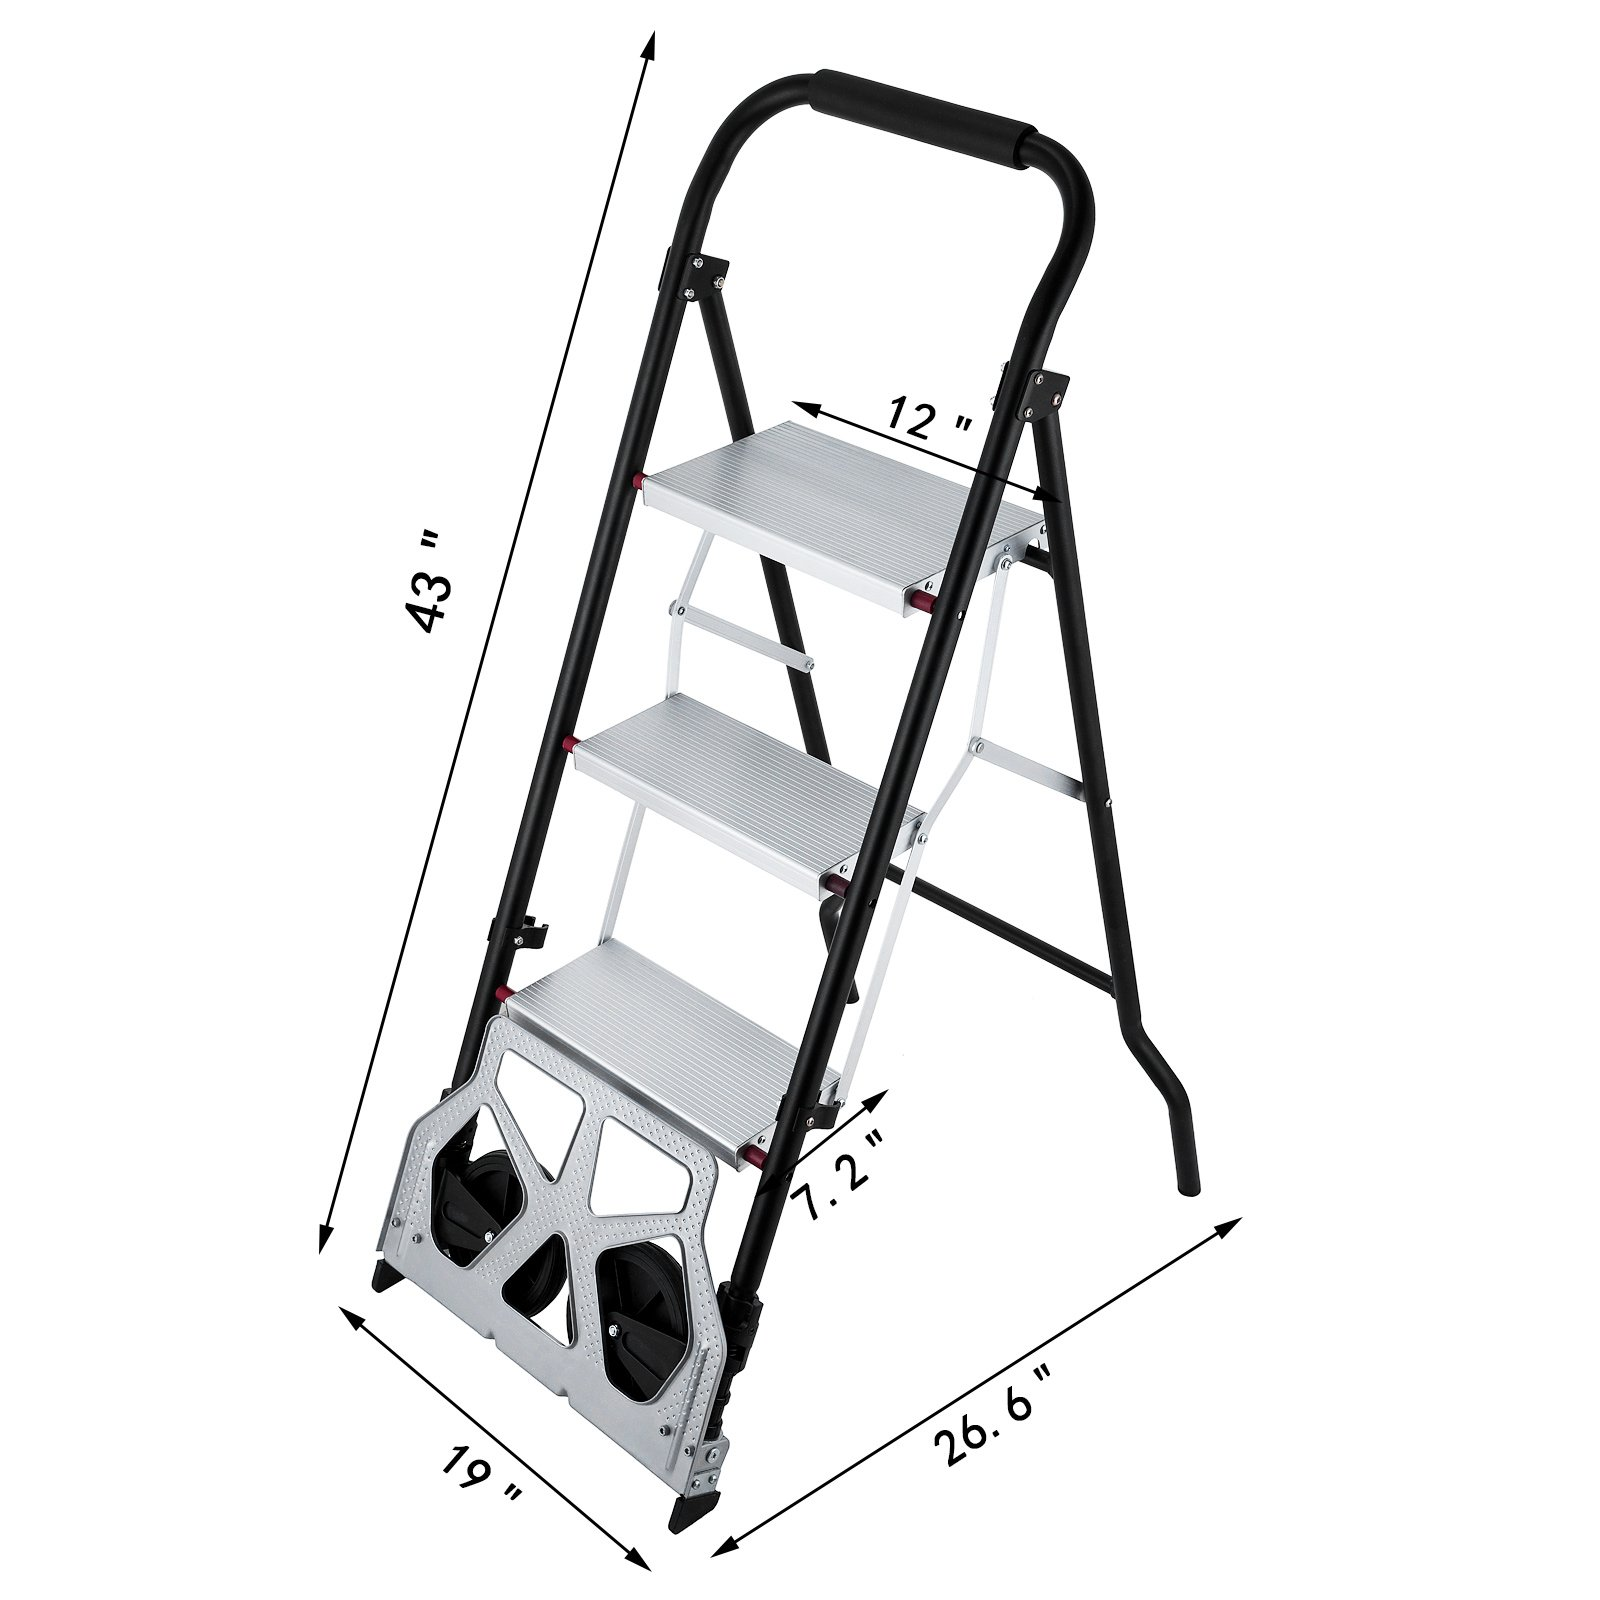 OrangeA 3-Steps Ladder Cart 2-in-1 Convertible Step Ladder Folding Hand Truck with Trolley by OrangeA (Image #9)